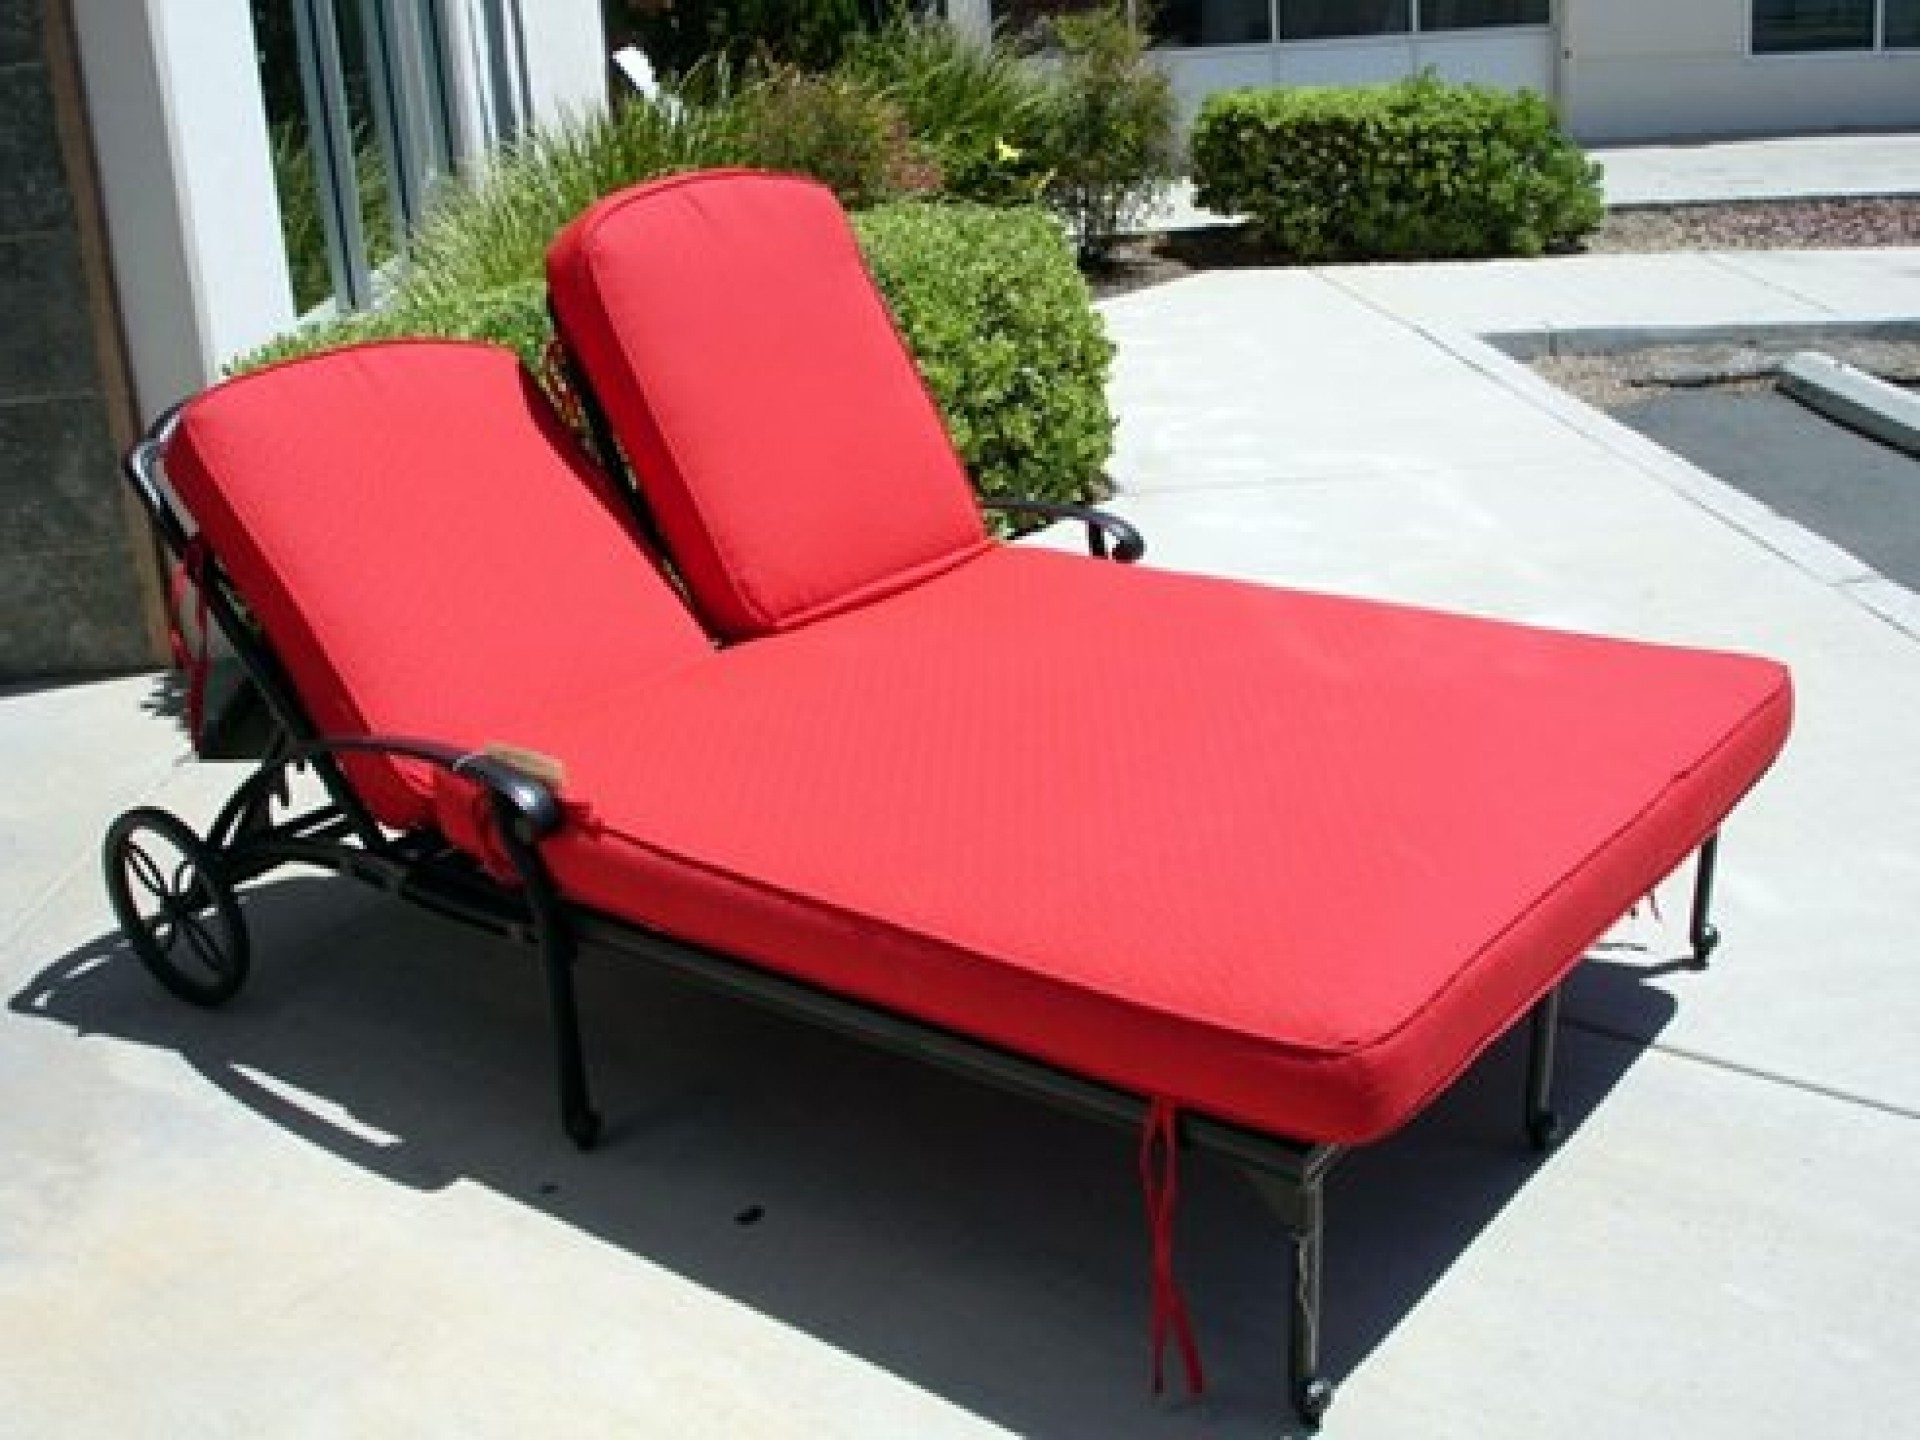 Cushion For Chaise Lounge Chair • Lounge Chairs Ideas Inside Recent Double Chaise Lounge Outdoor Chairs (View 12 of 15)